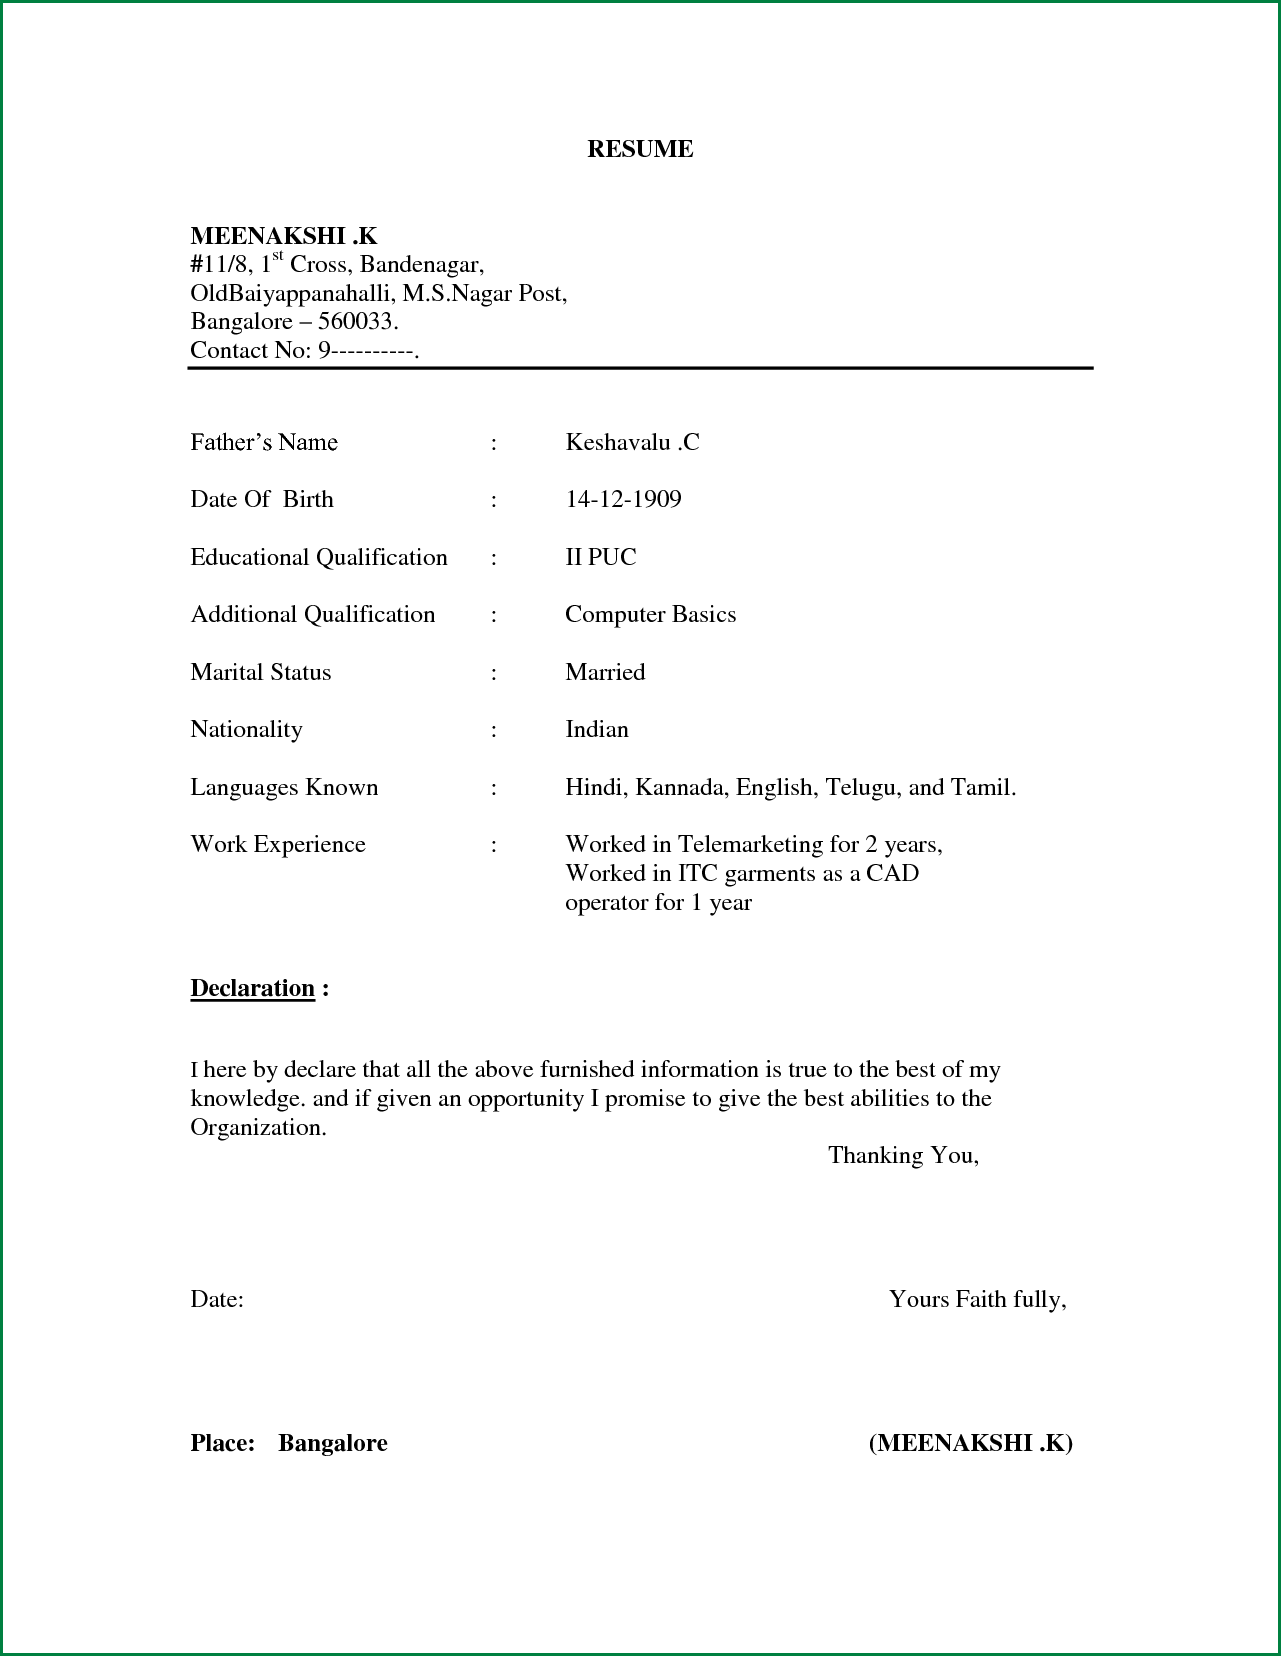 Simple Resume Format For Freshers In Word File 137085913 Png Resume Format Download Basic Resume Format Resume Format Free Download